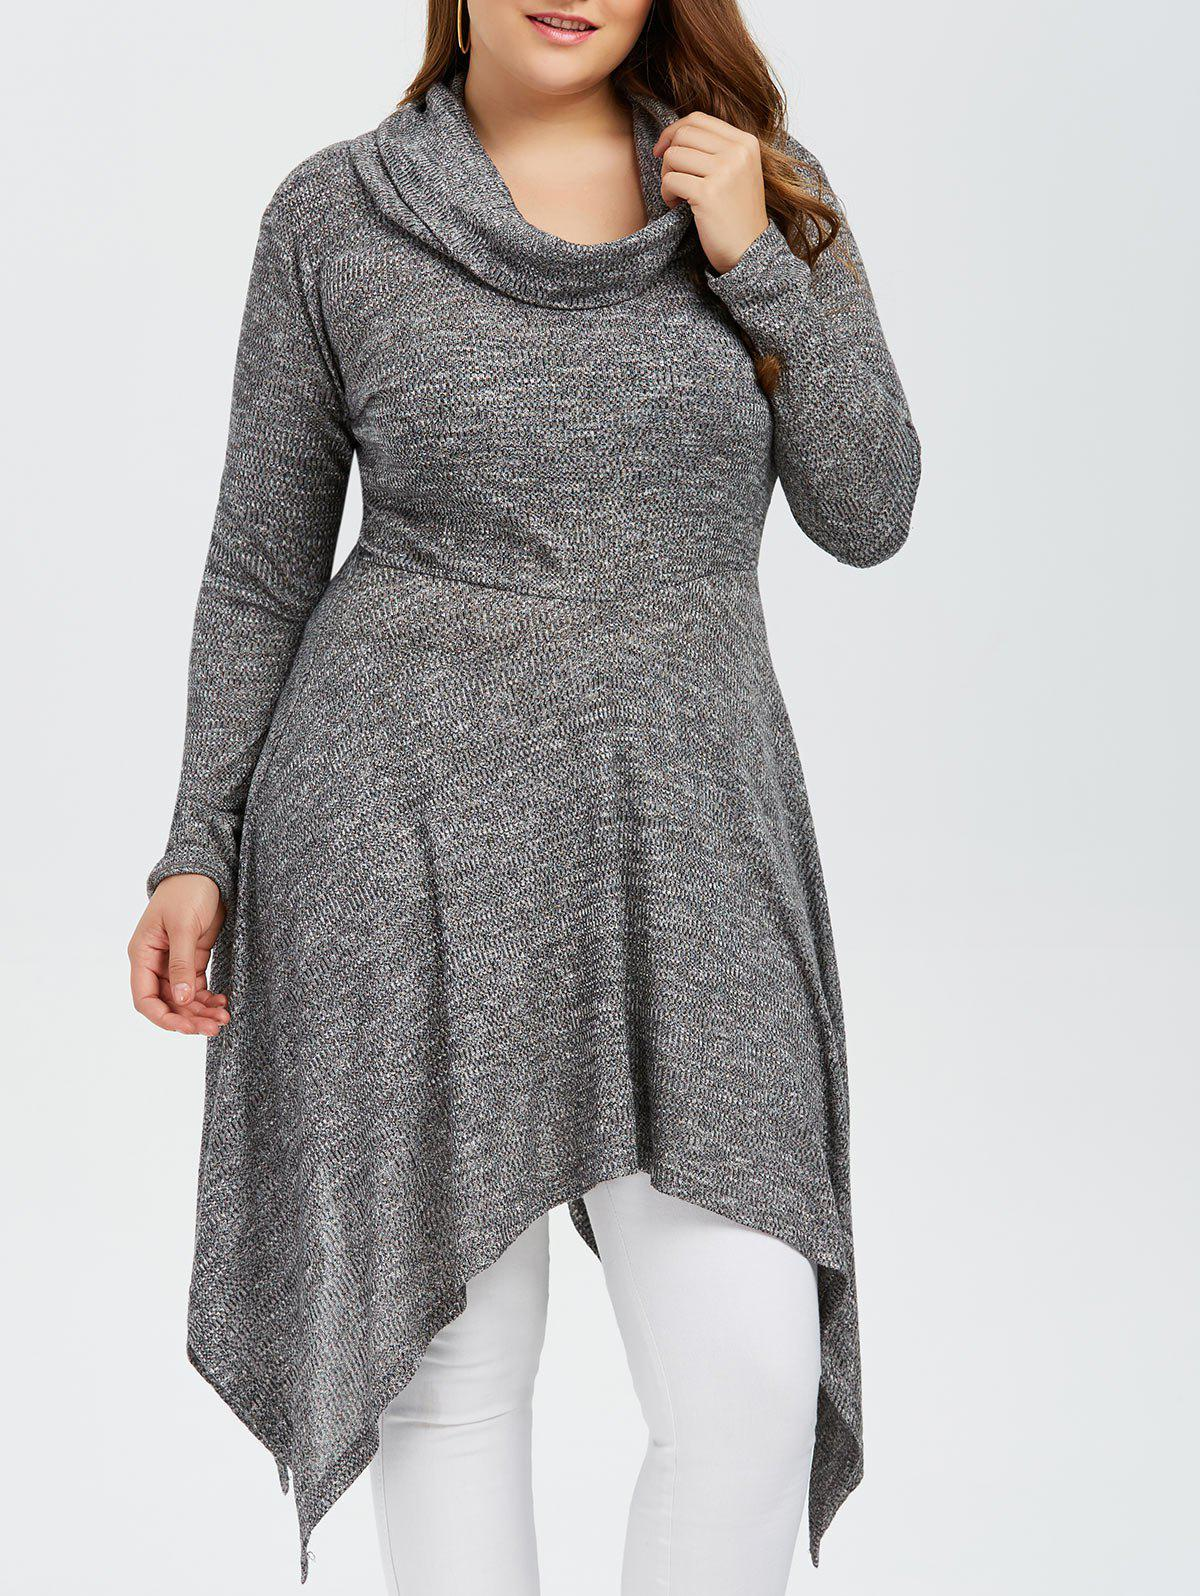 Plus Size Asymmetric Cowl Neck Knitwear - GRAY XL